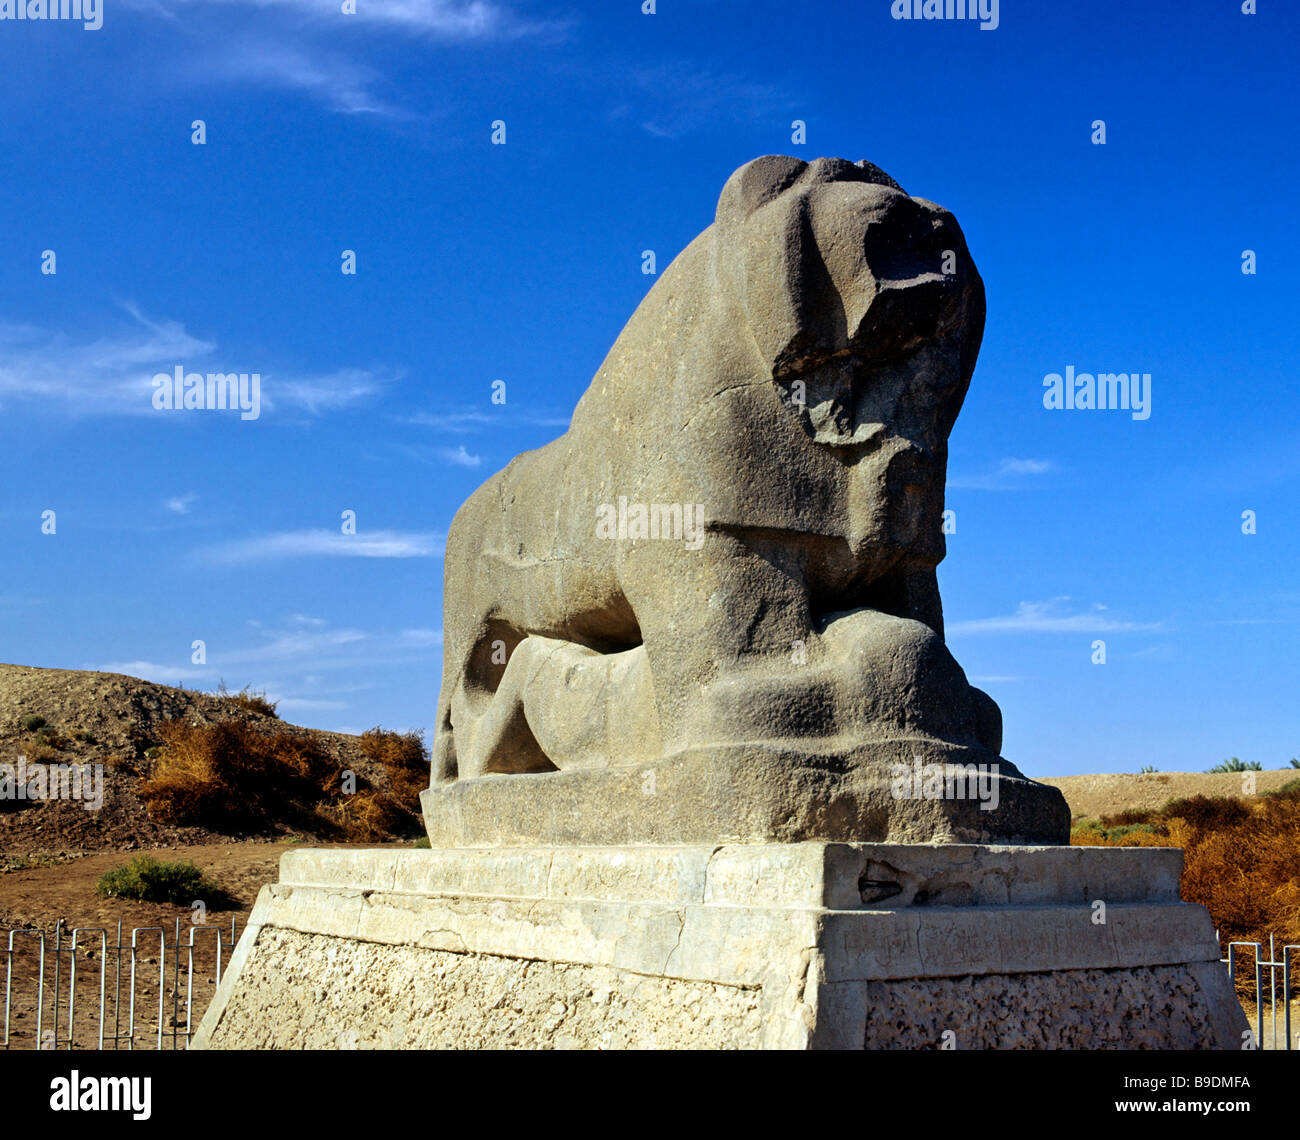 Lion of Babylon statue, Babil Province, Iraq, Middle East Stock Photo